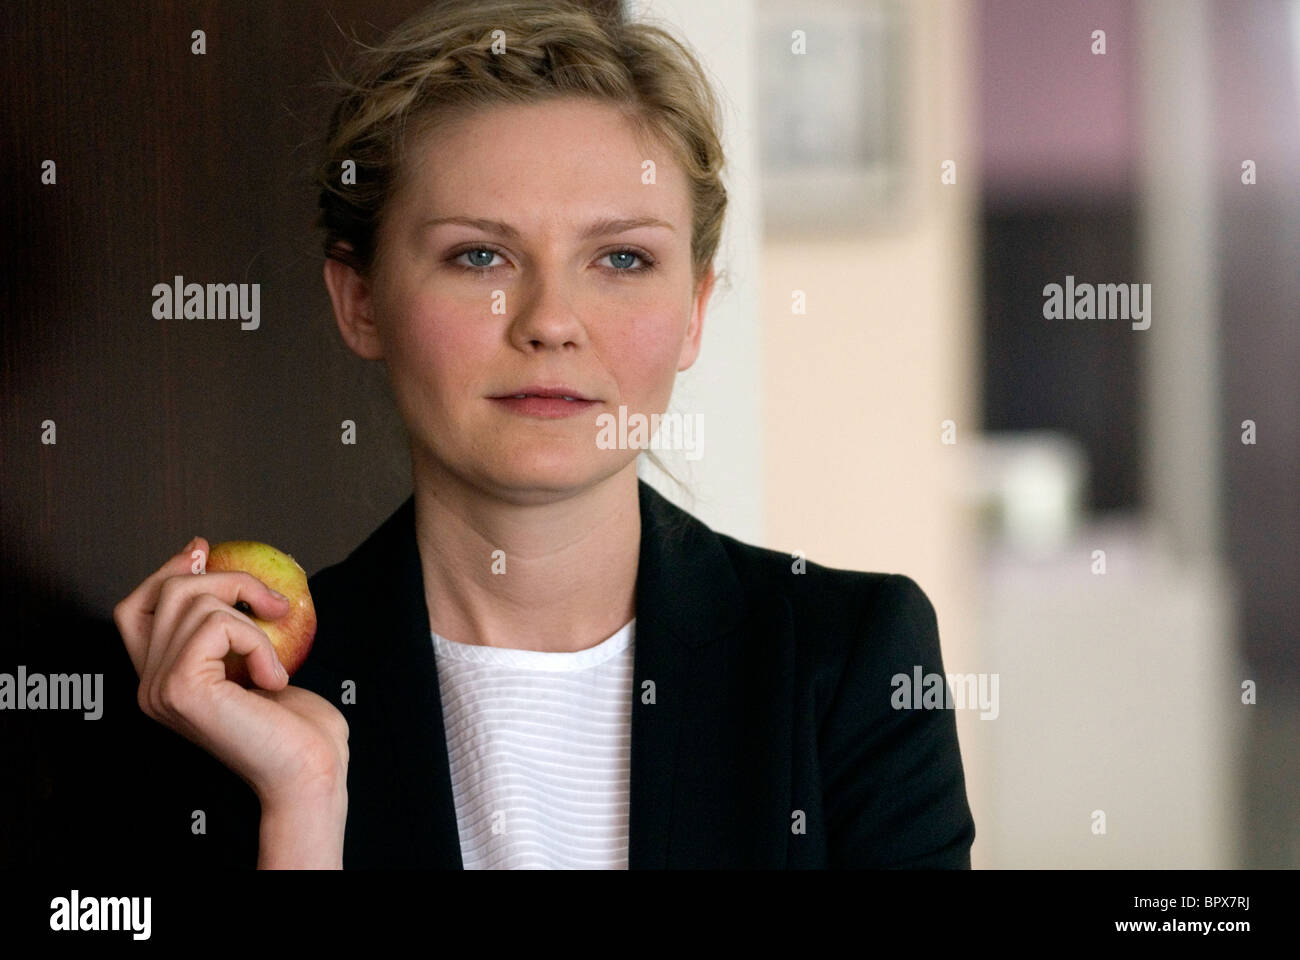 KIRSTEN DUNST HOW TO LOSE FRIENDS & ALIENATE PEOPLE (2008) - Stock Image